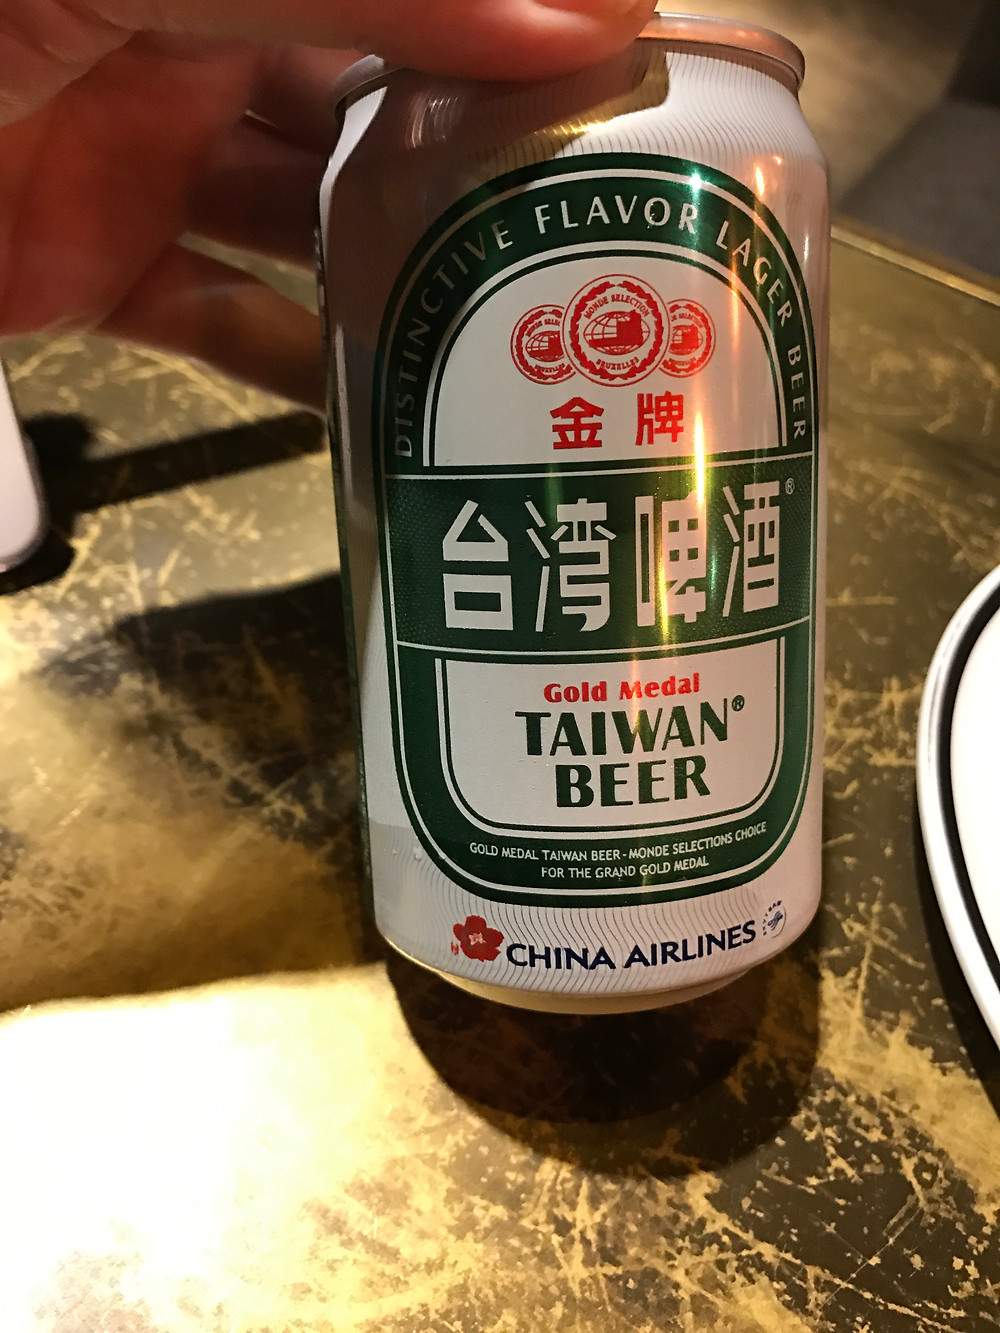 Taiwan beer with China Airline logo